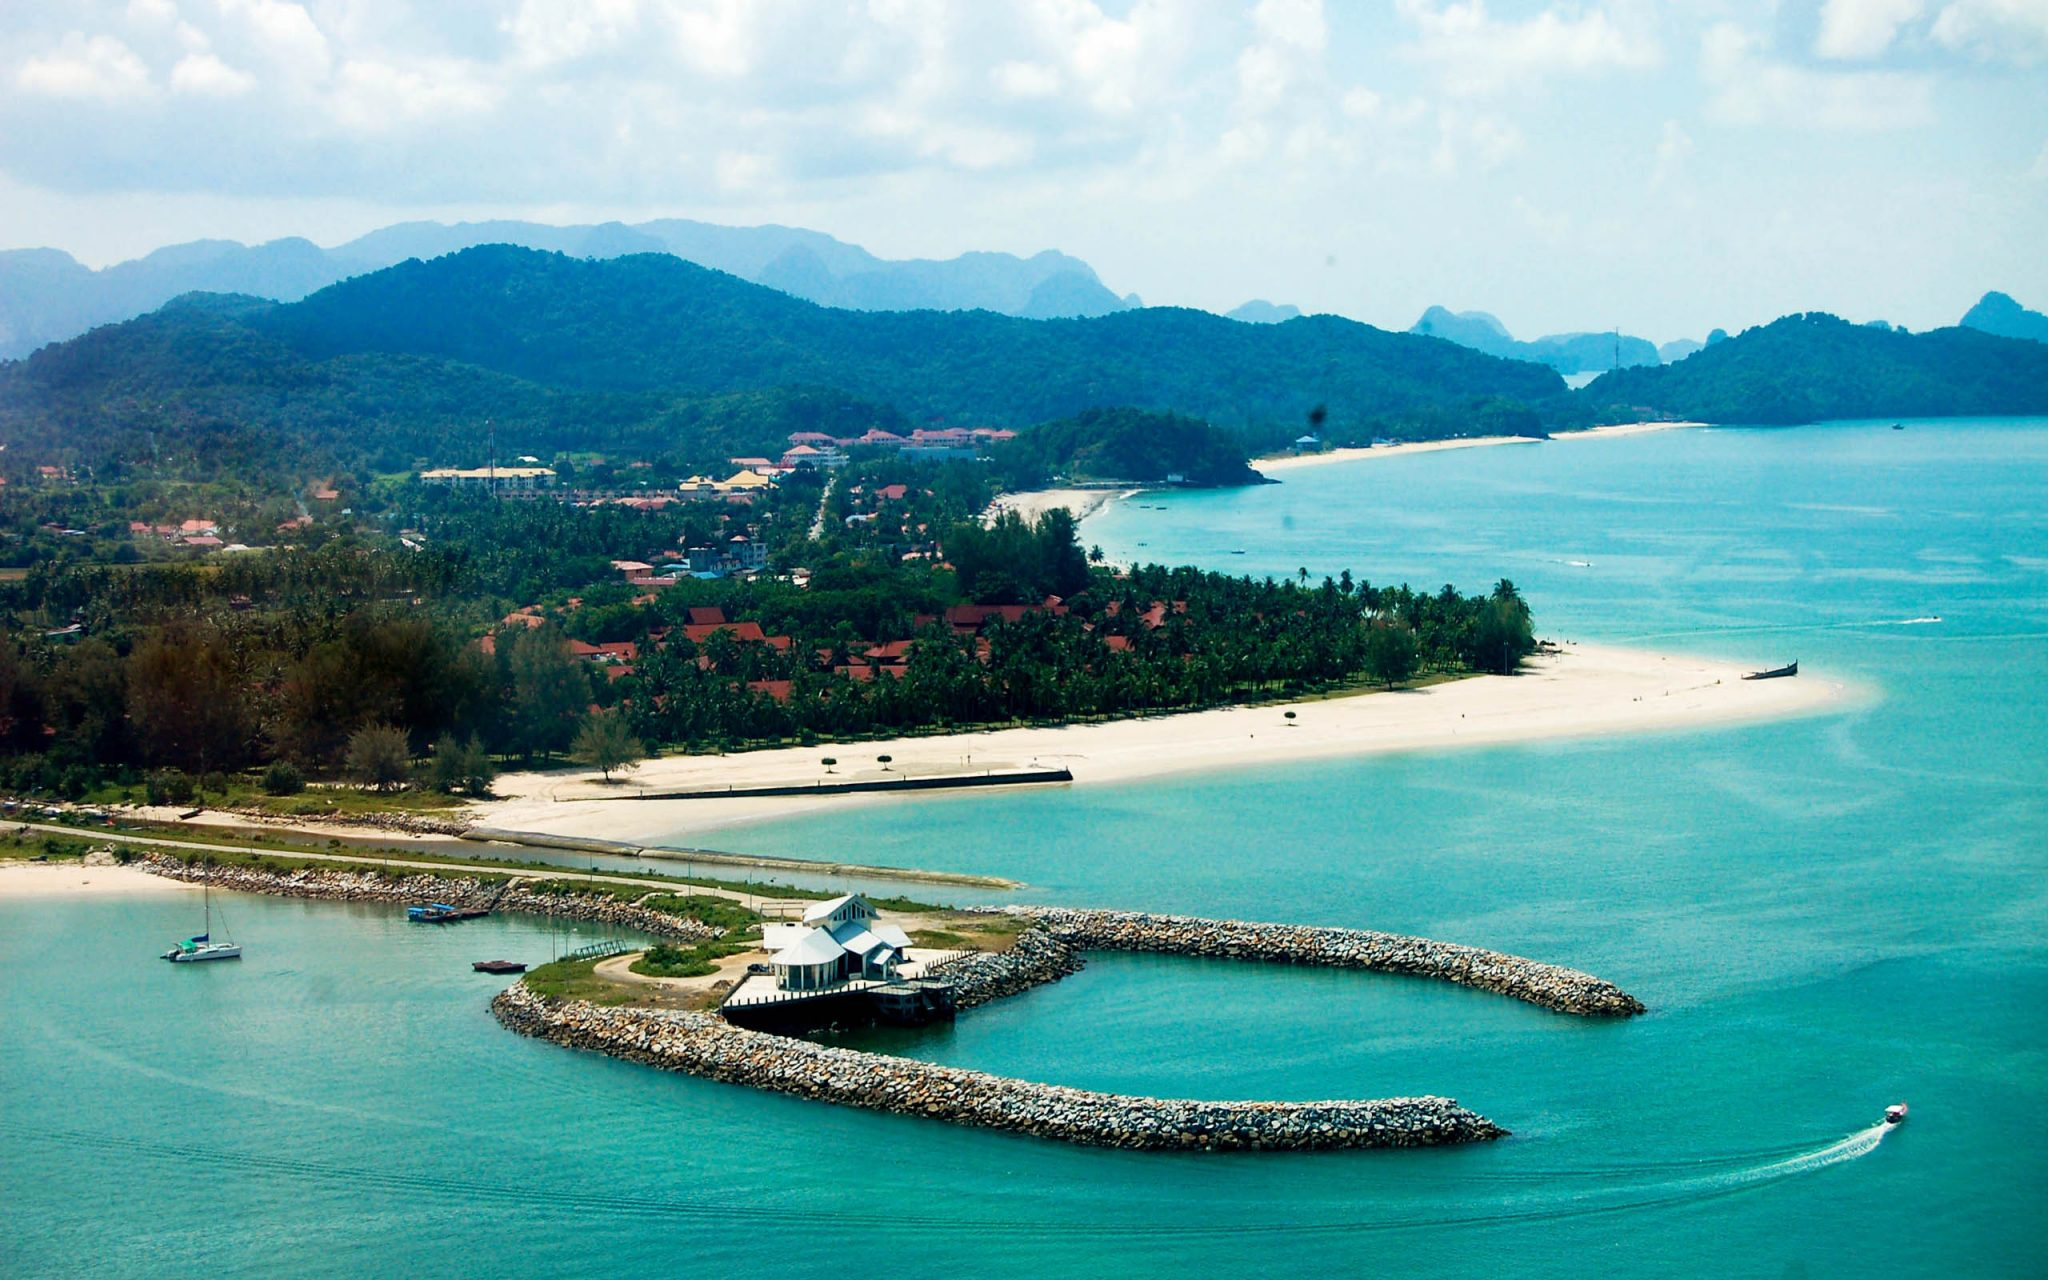 Travel Tips For Langkawi, Travel Tips, Travel Stories 2014, Best Beach Destinations, StyleRug